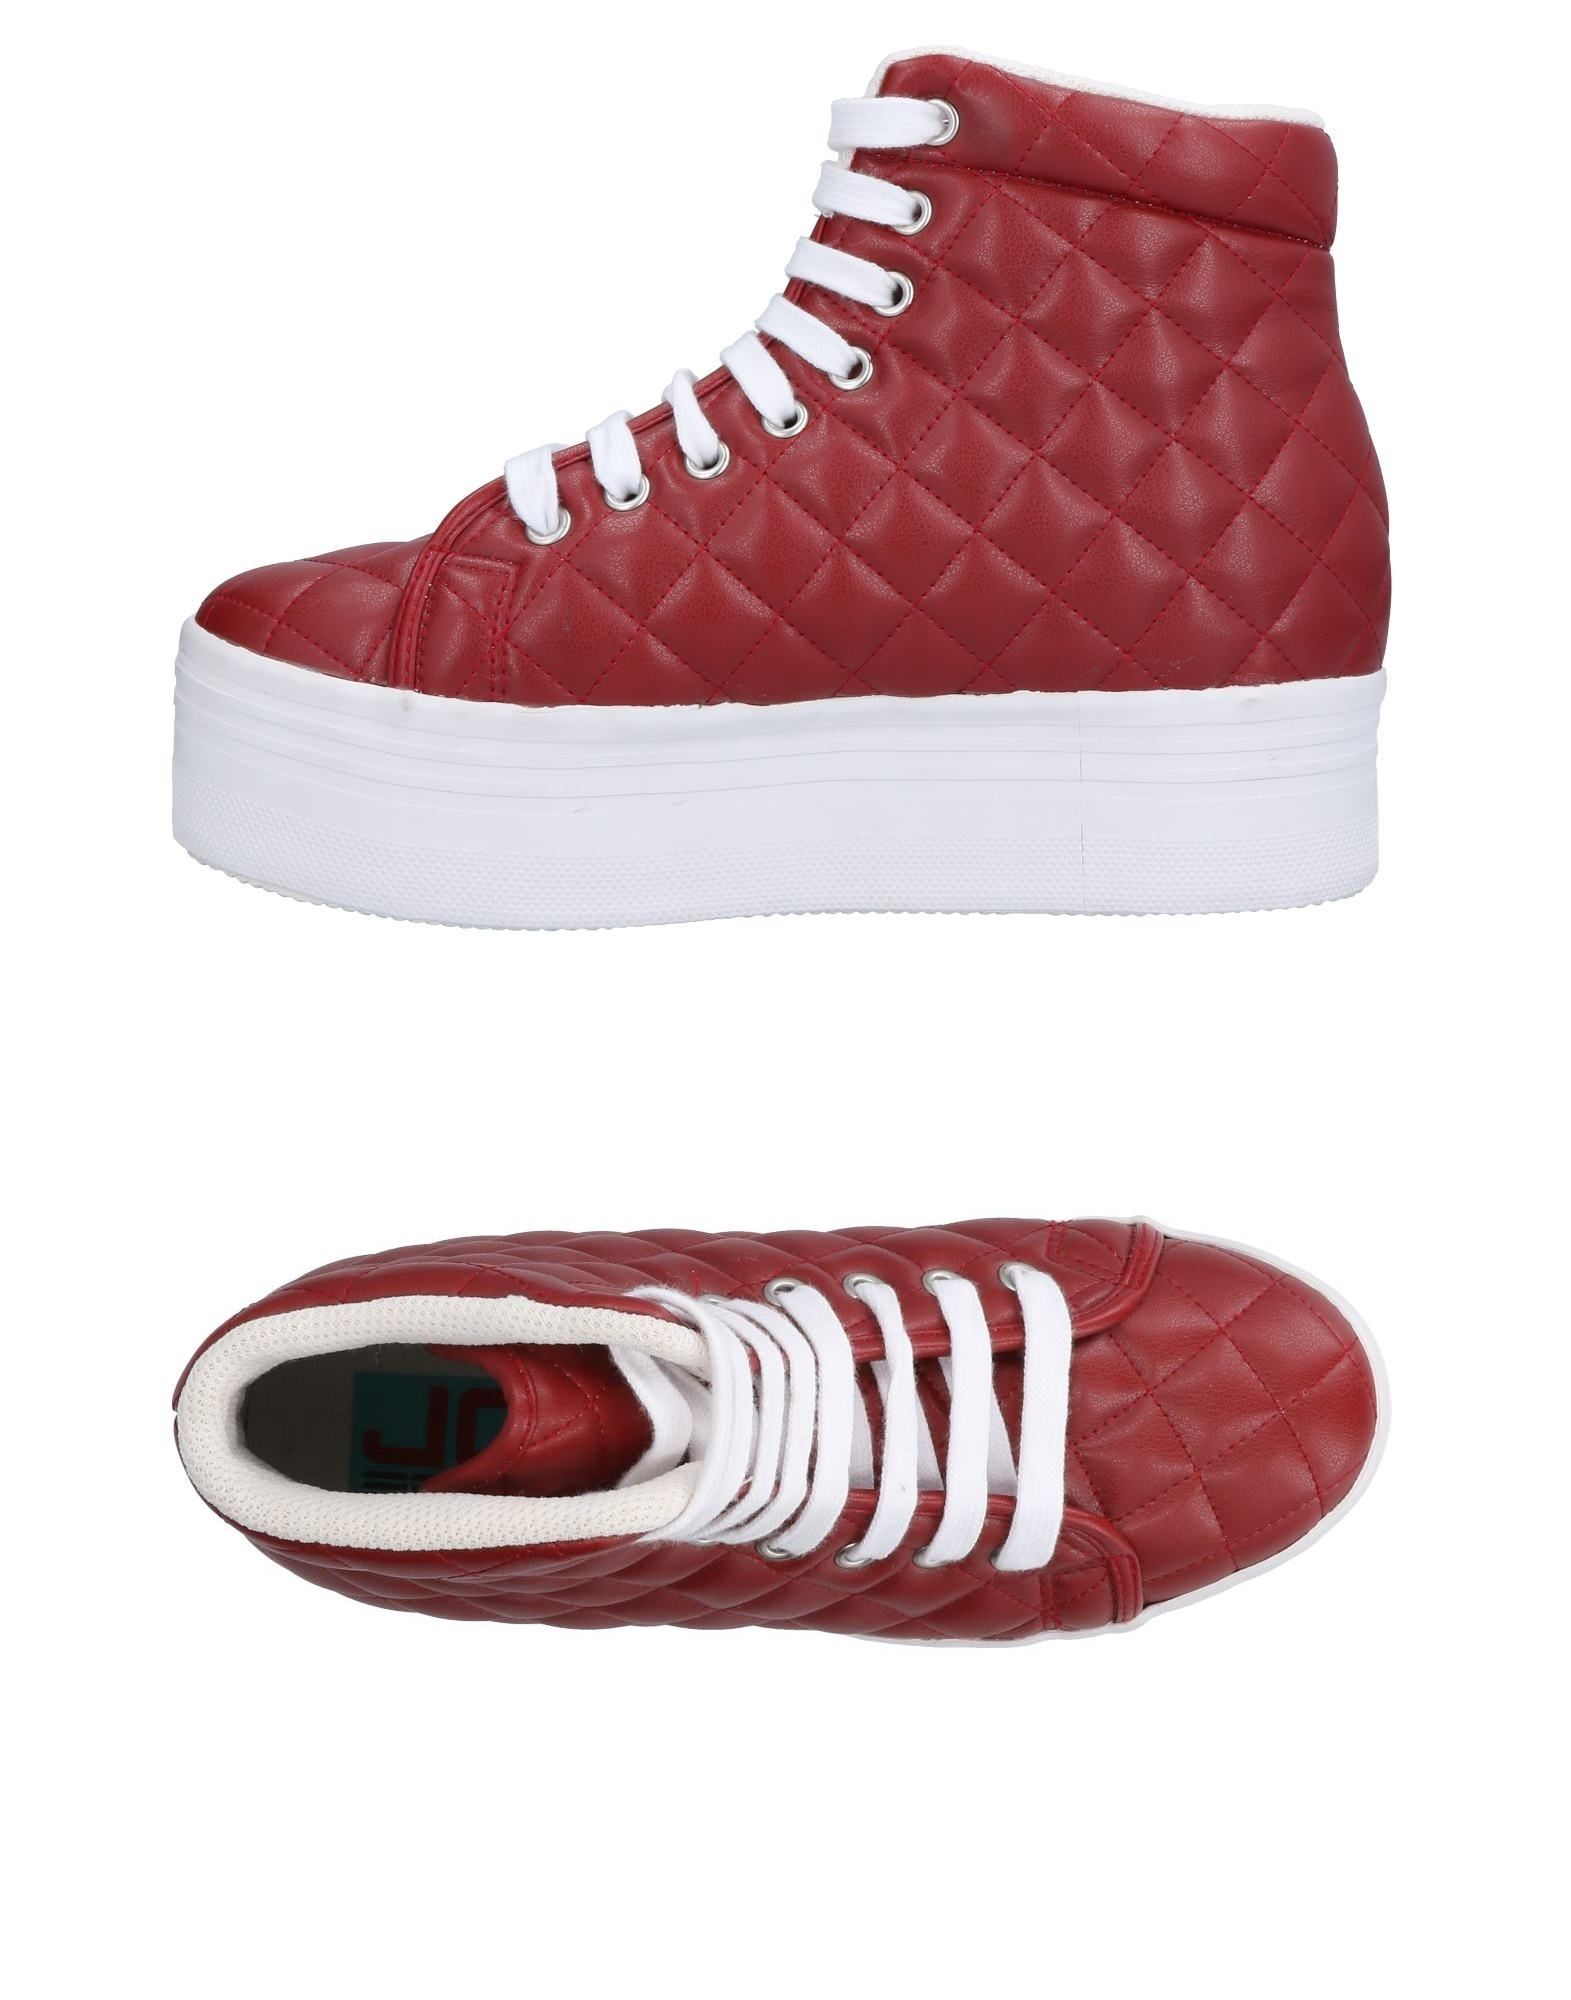 a3f390a6d48 JEFFREY CAMPBELL ΠΑΠΟΥΤΣΙΑ Χαμηλά sneakers, Γυναικεία sneakers ...